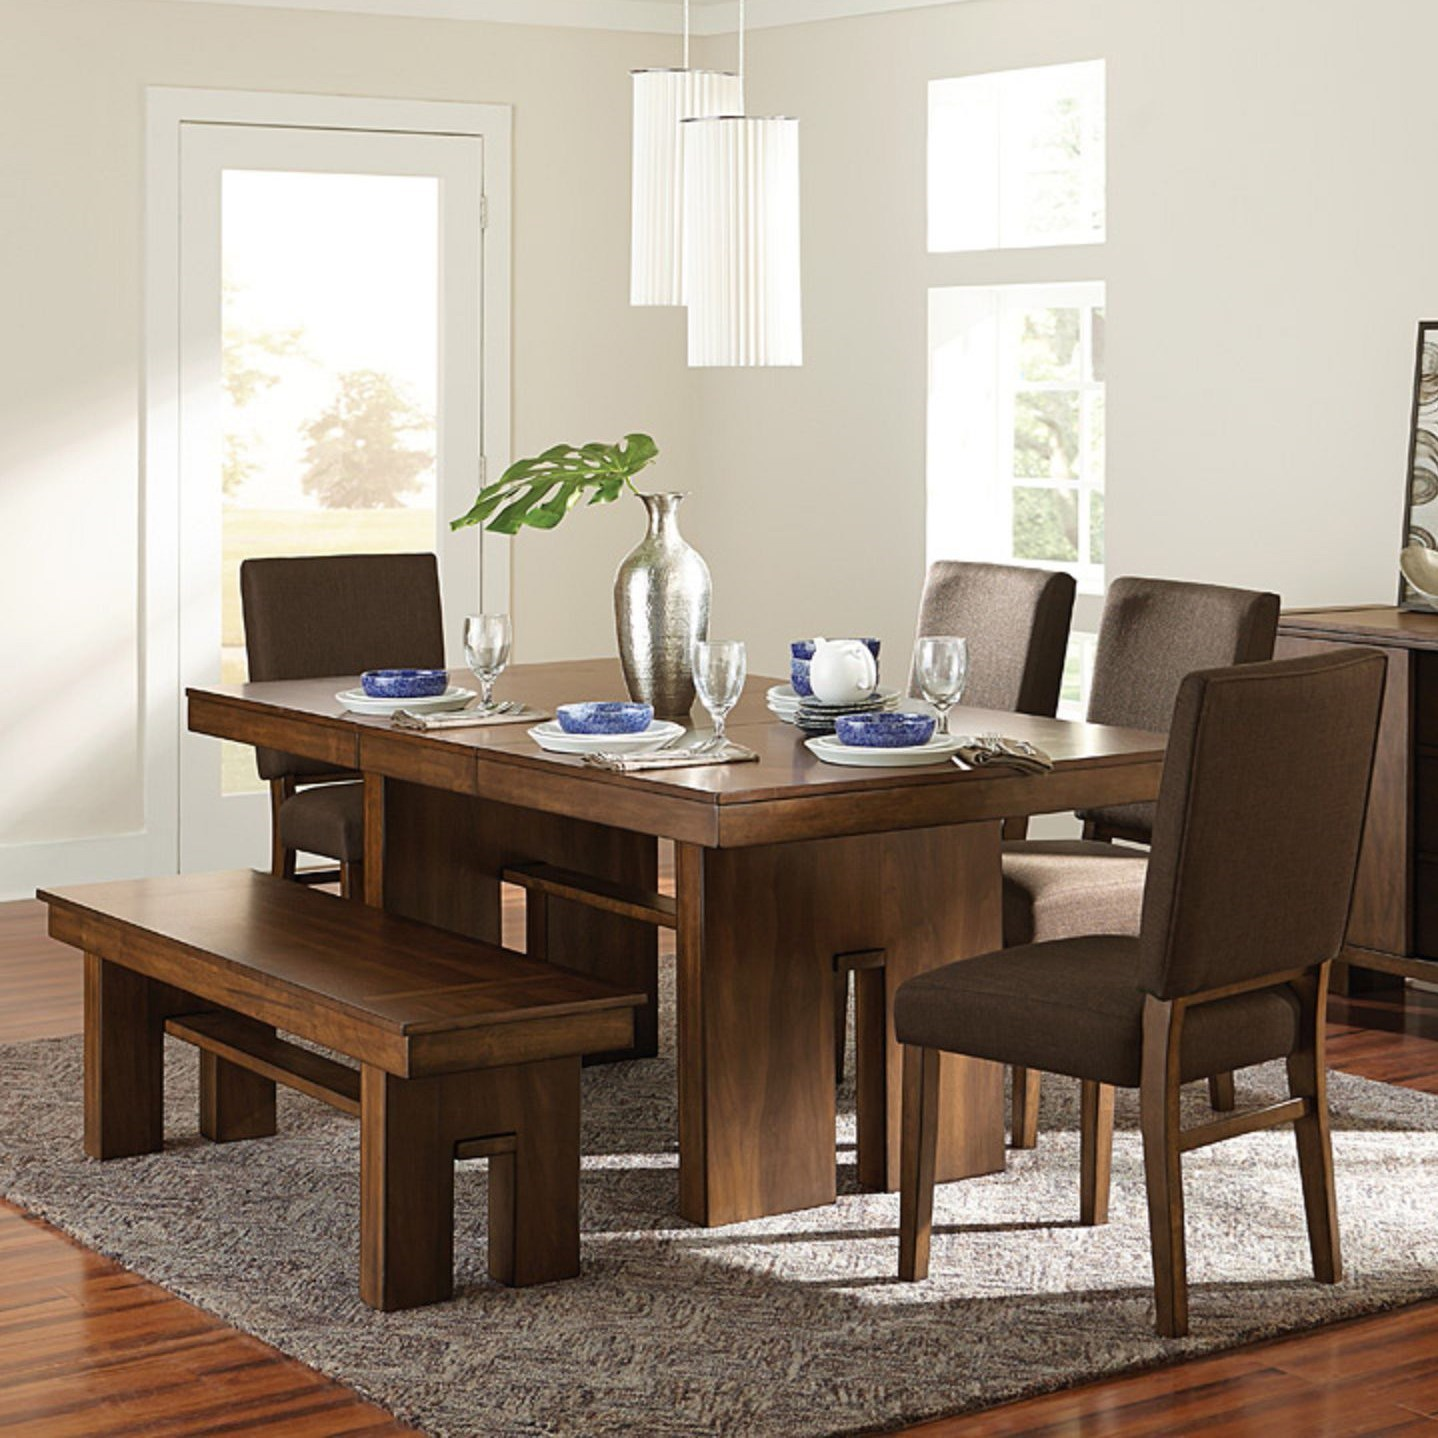 Sedley Table And Chair Set With Bench